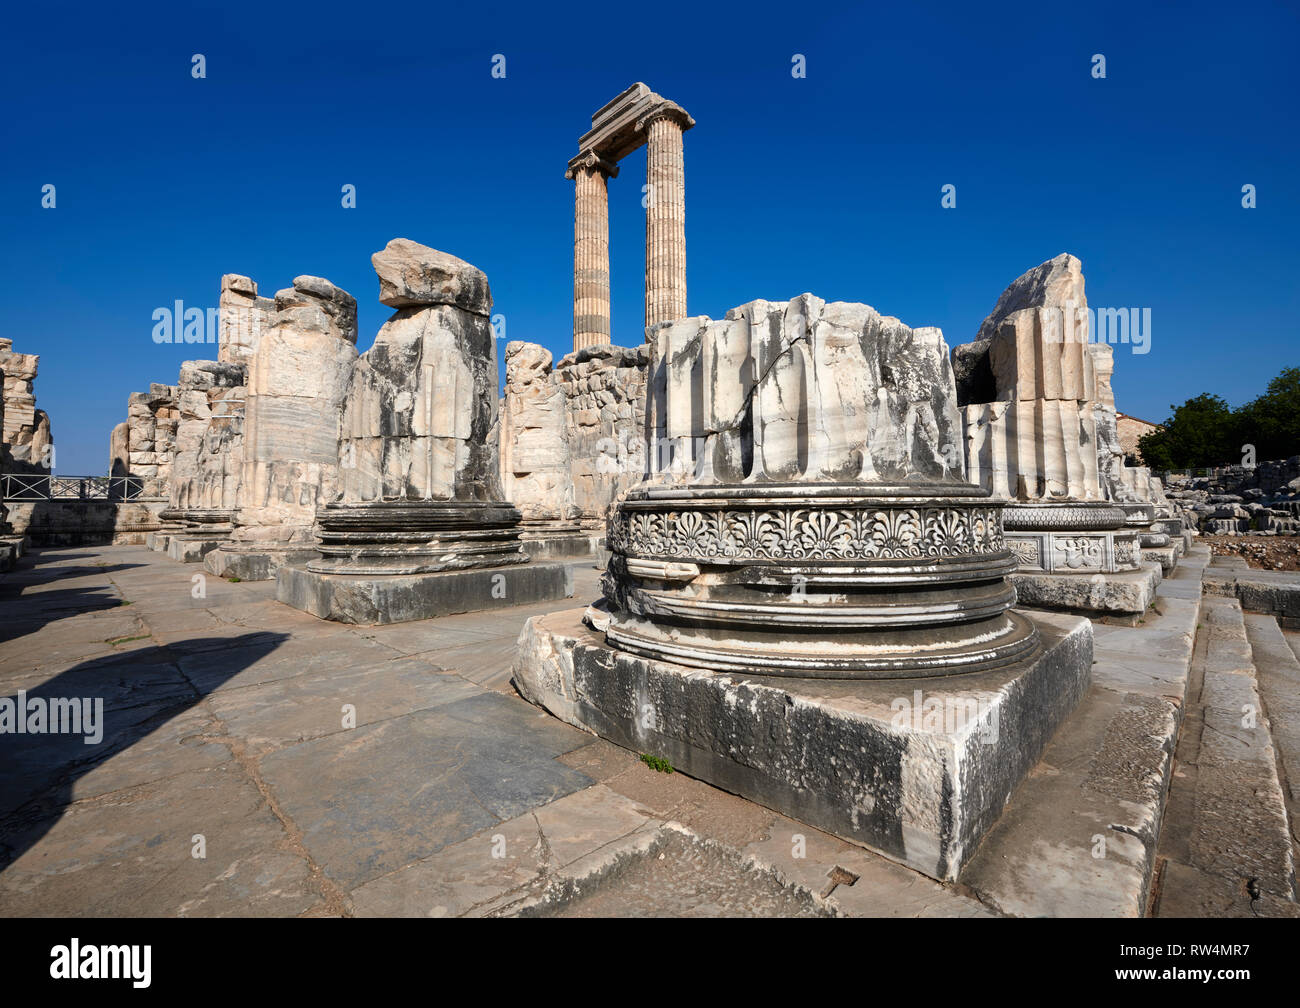 Picture of the Ionian columns of the ruins of the Ancient Ionian Greek  Didyma Temple of Apollo & home to the Oracle of Apollo.  Also known as the Did - Stock Image